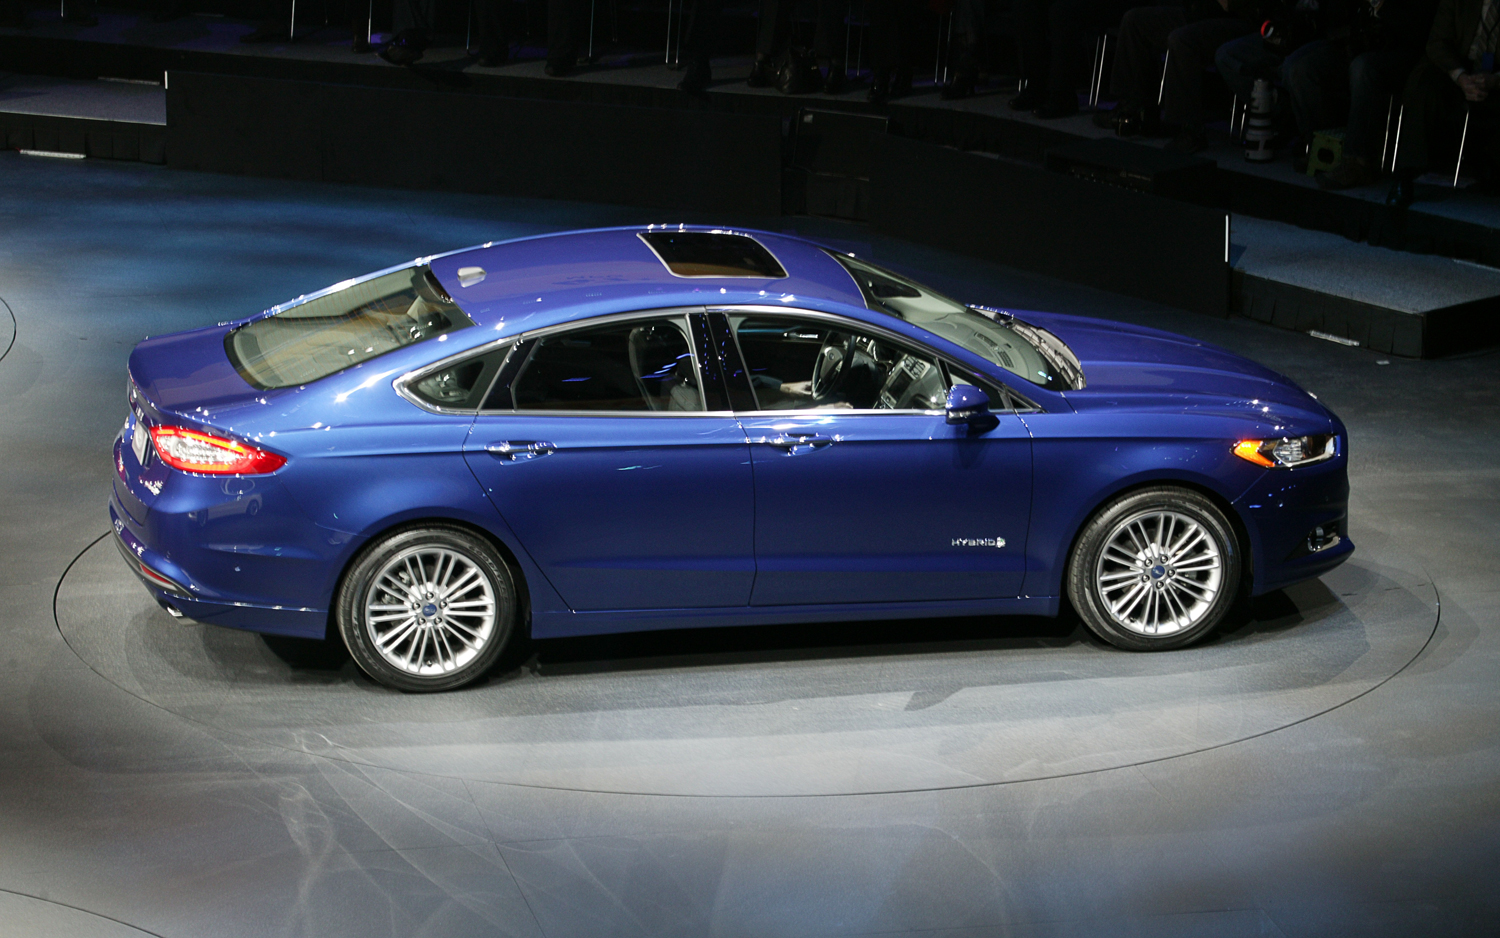 Ford Fusion 12 Hd Wallpaper